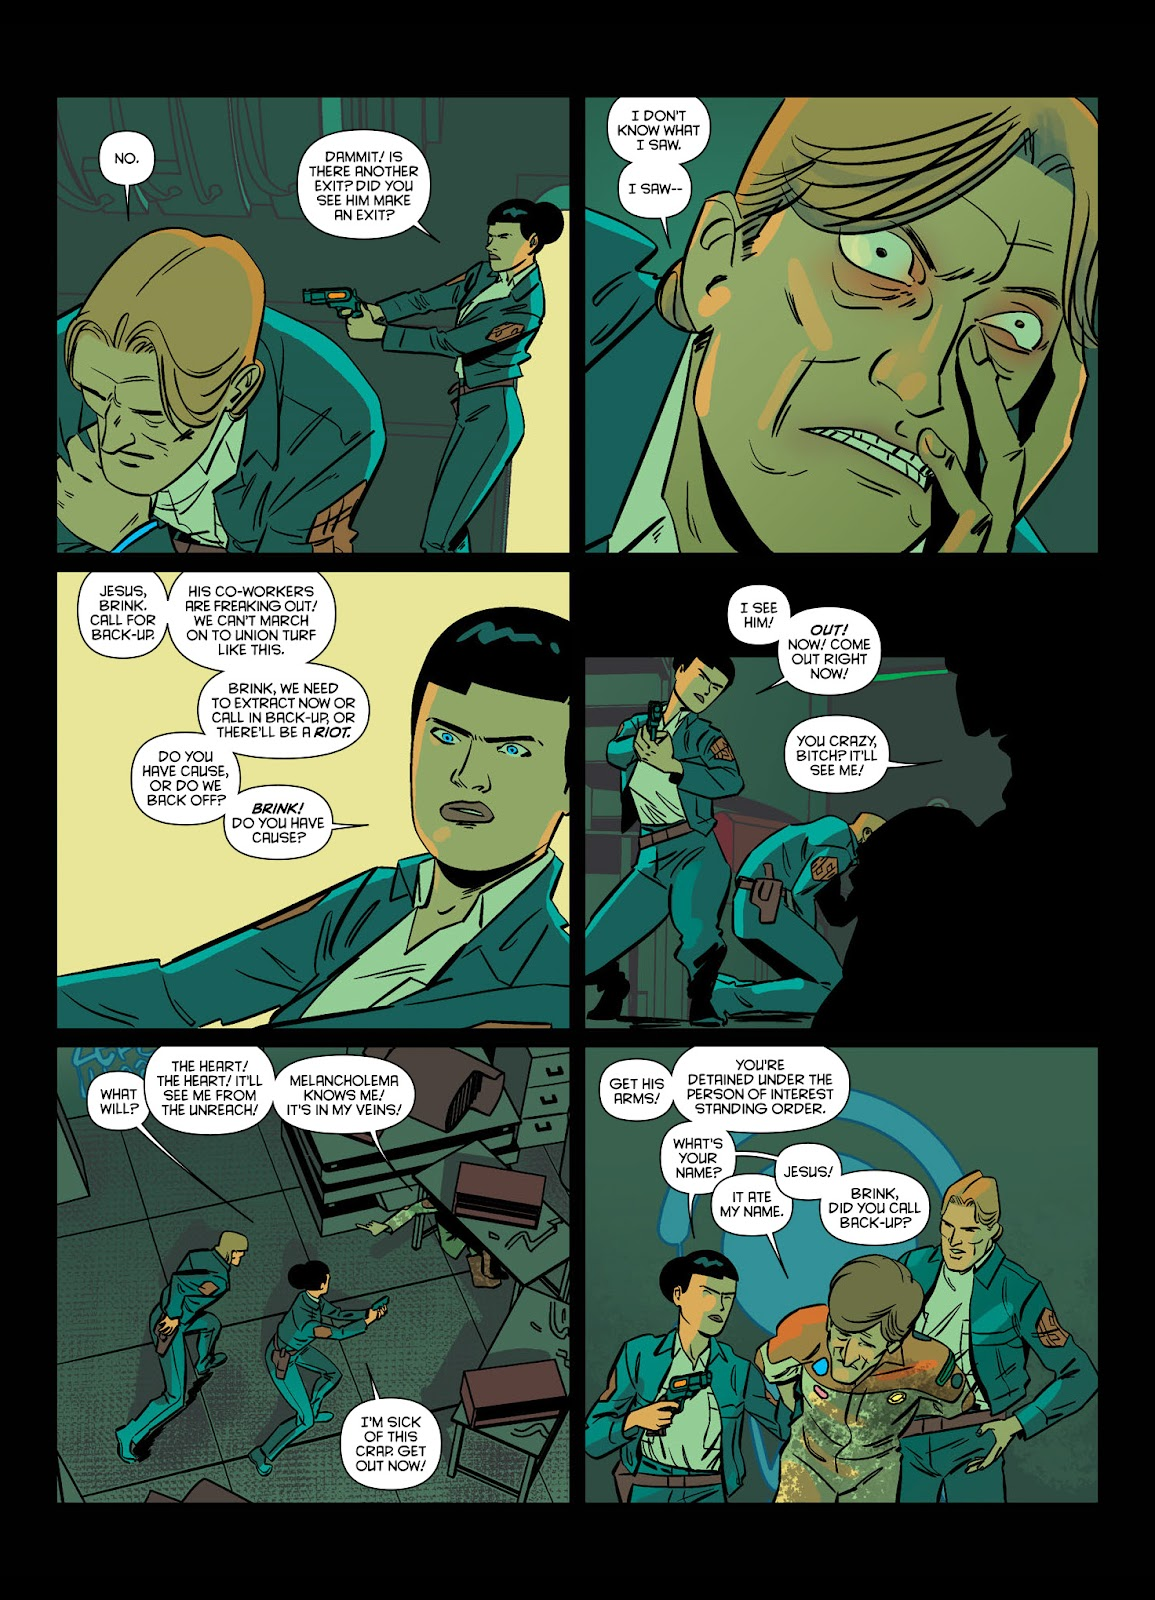 Read online Brink comic -  Issue # TPB 1 - 37